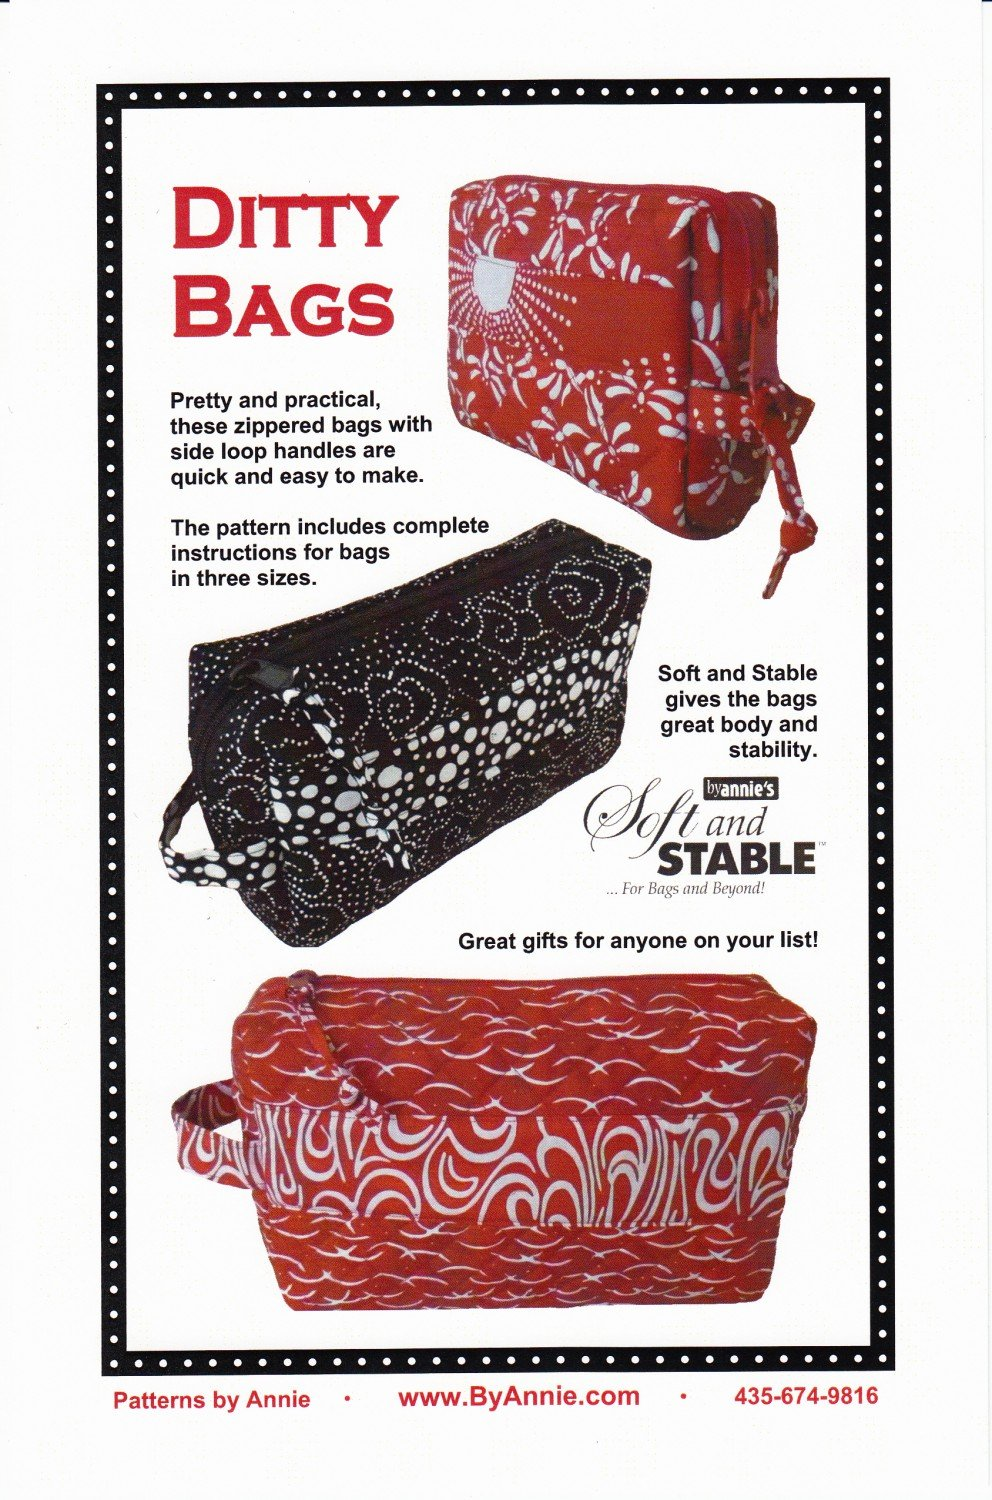 Ditty Bags by Annie